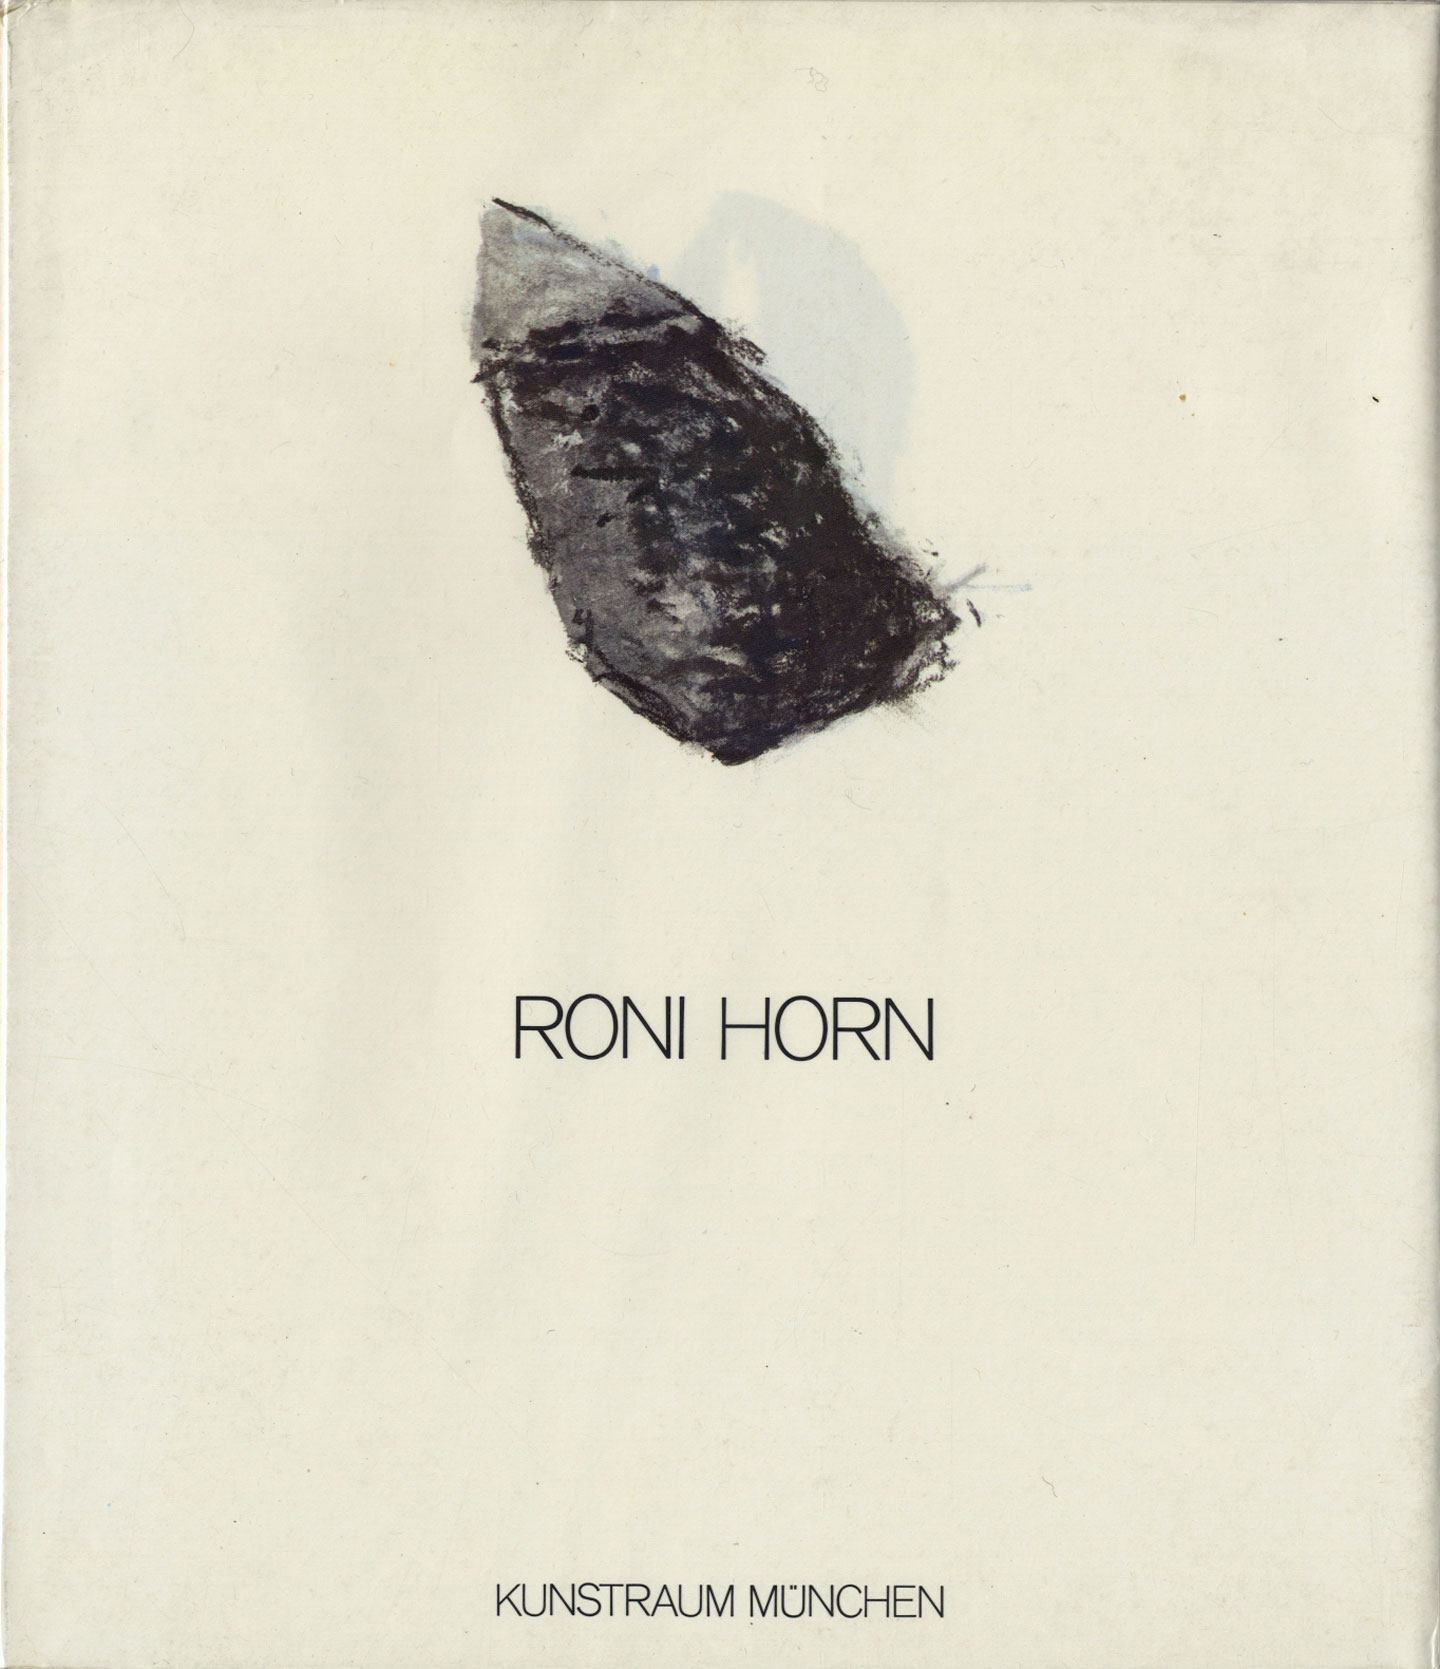 Roni Horn (Kunstraum München, 1983) [SIGNED]